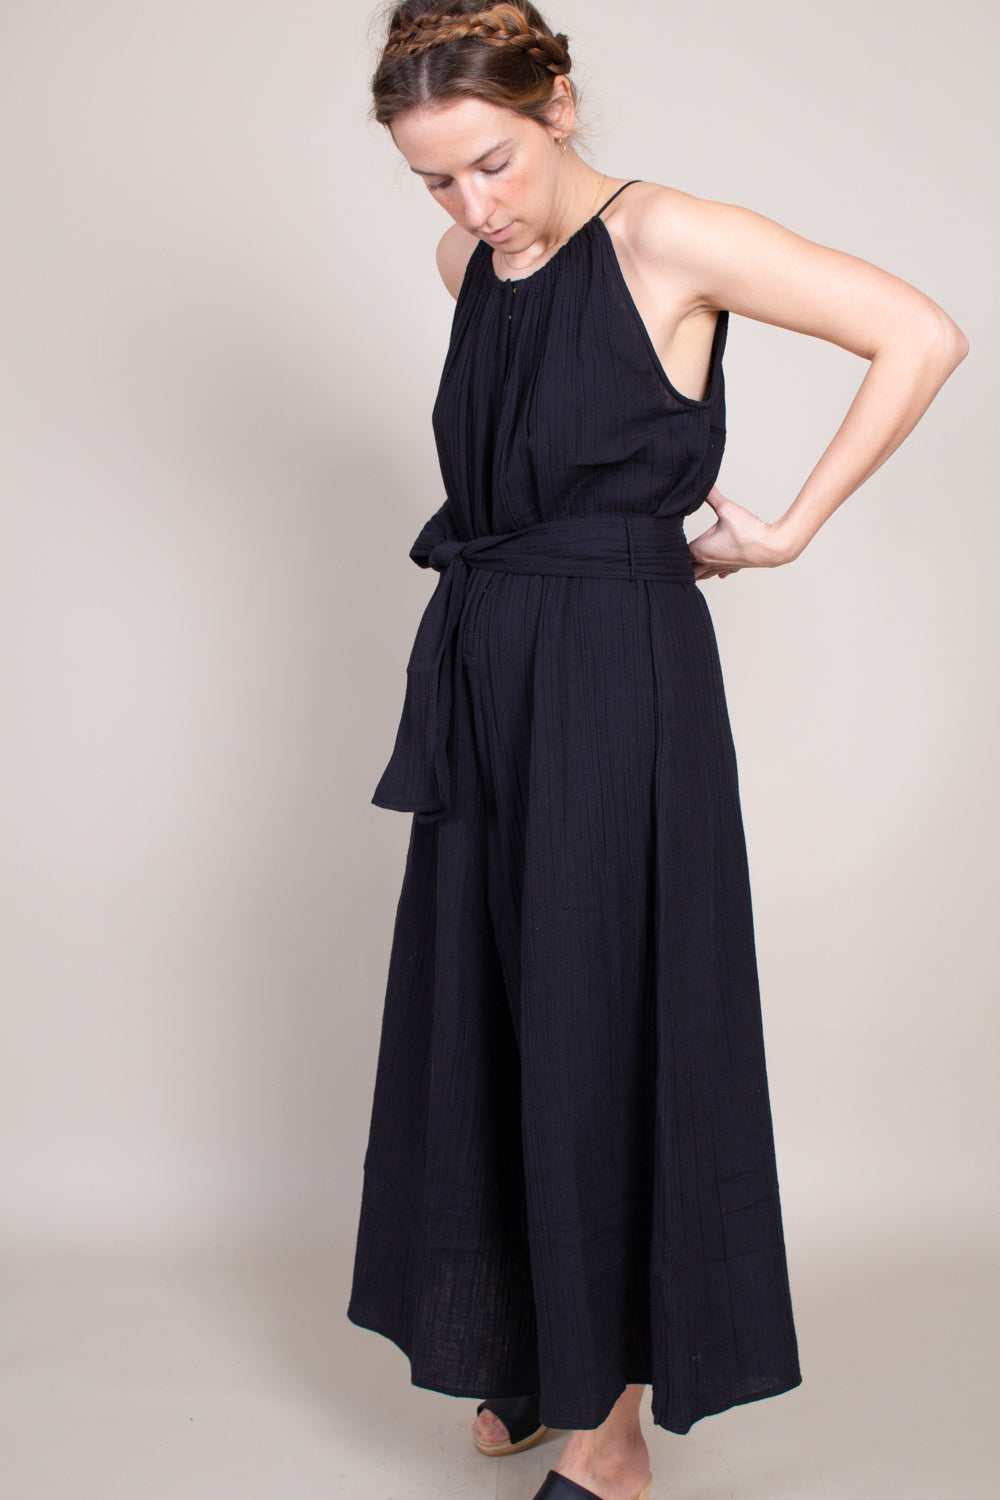 Apiece Apart Sleeveless Isla Jumpsuit in Black - Vert & Vogue